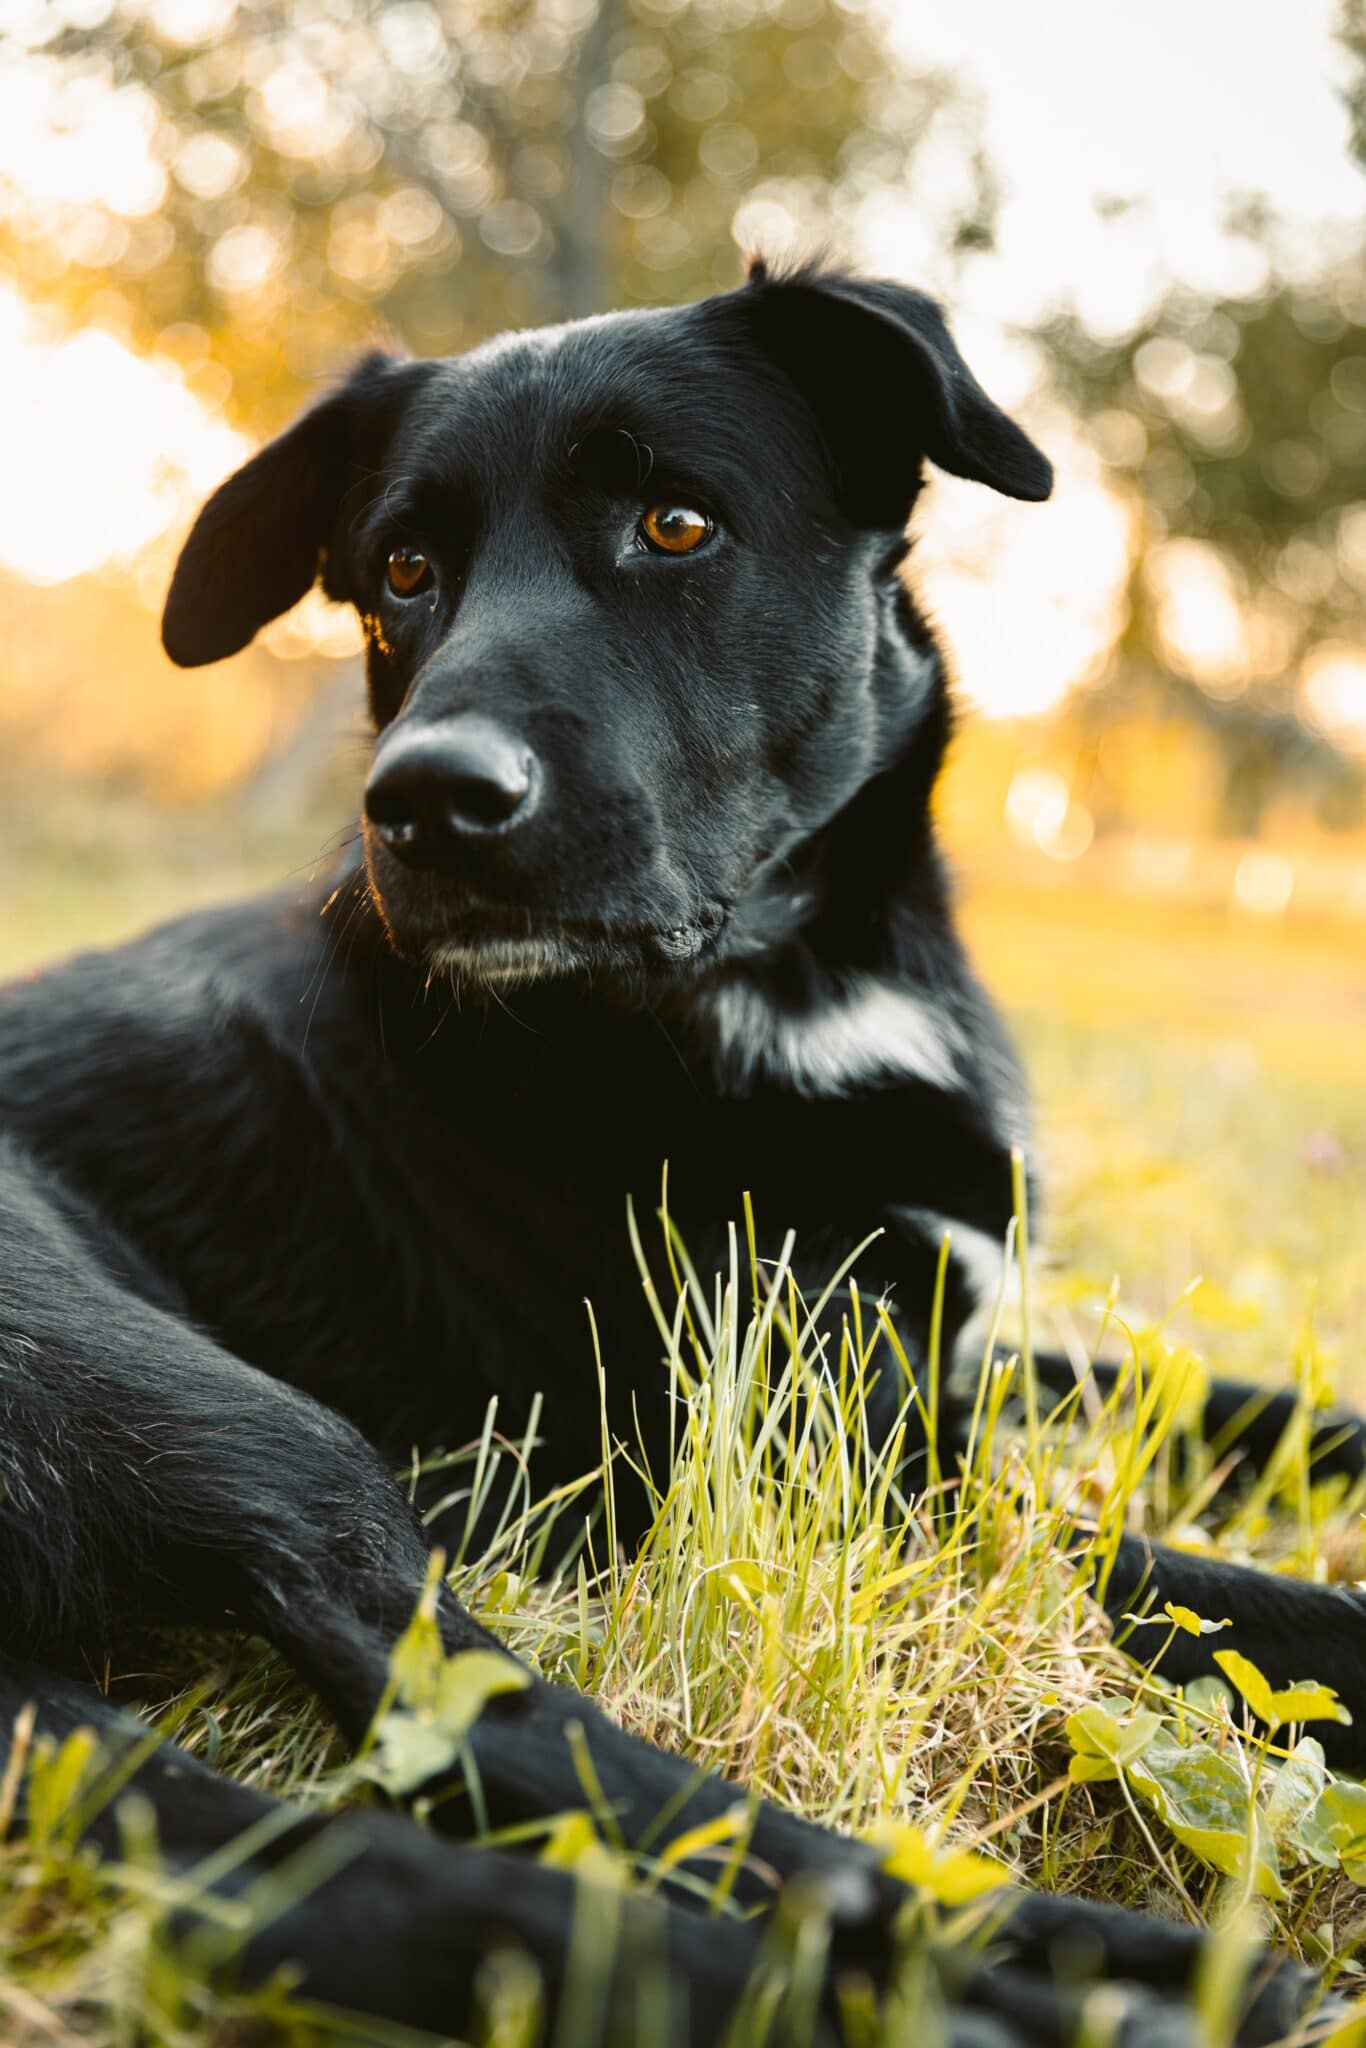 3 fun tricks to teach your dog featured